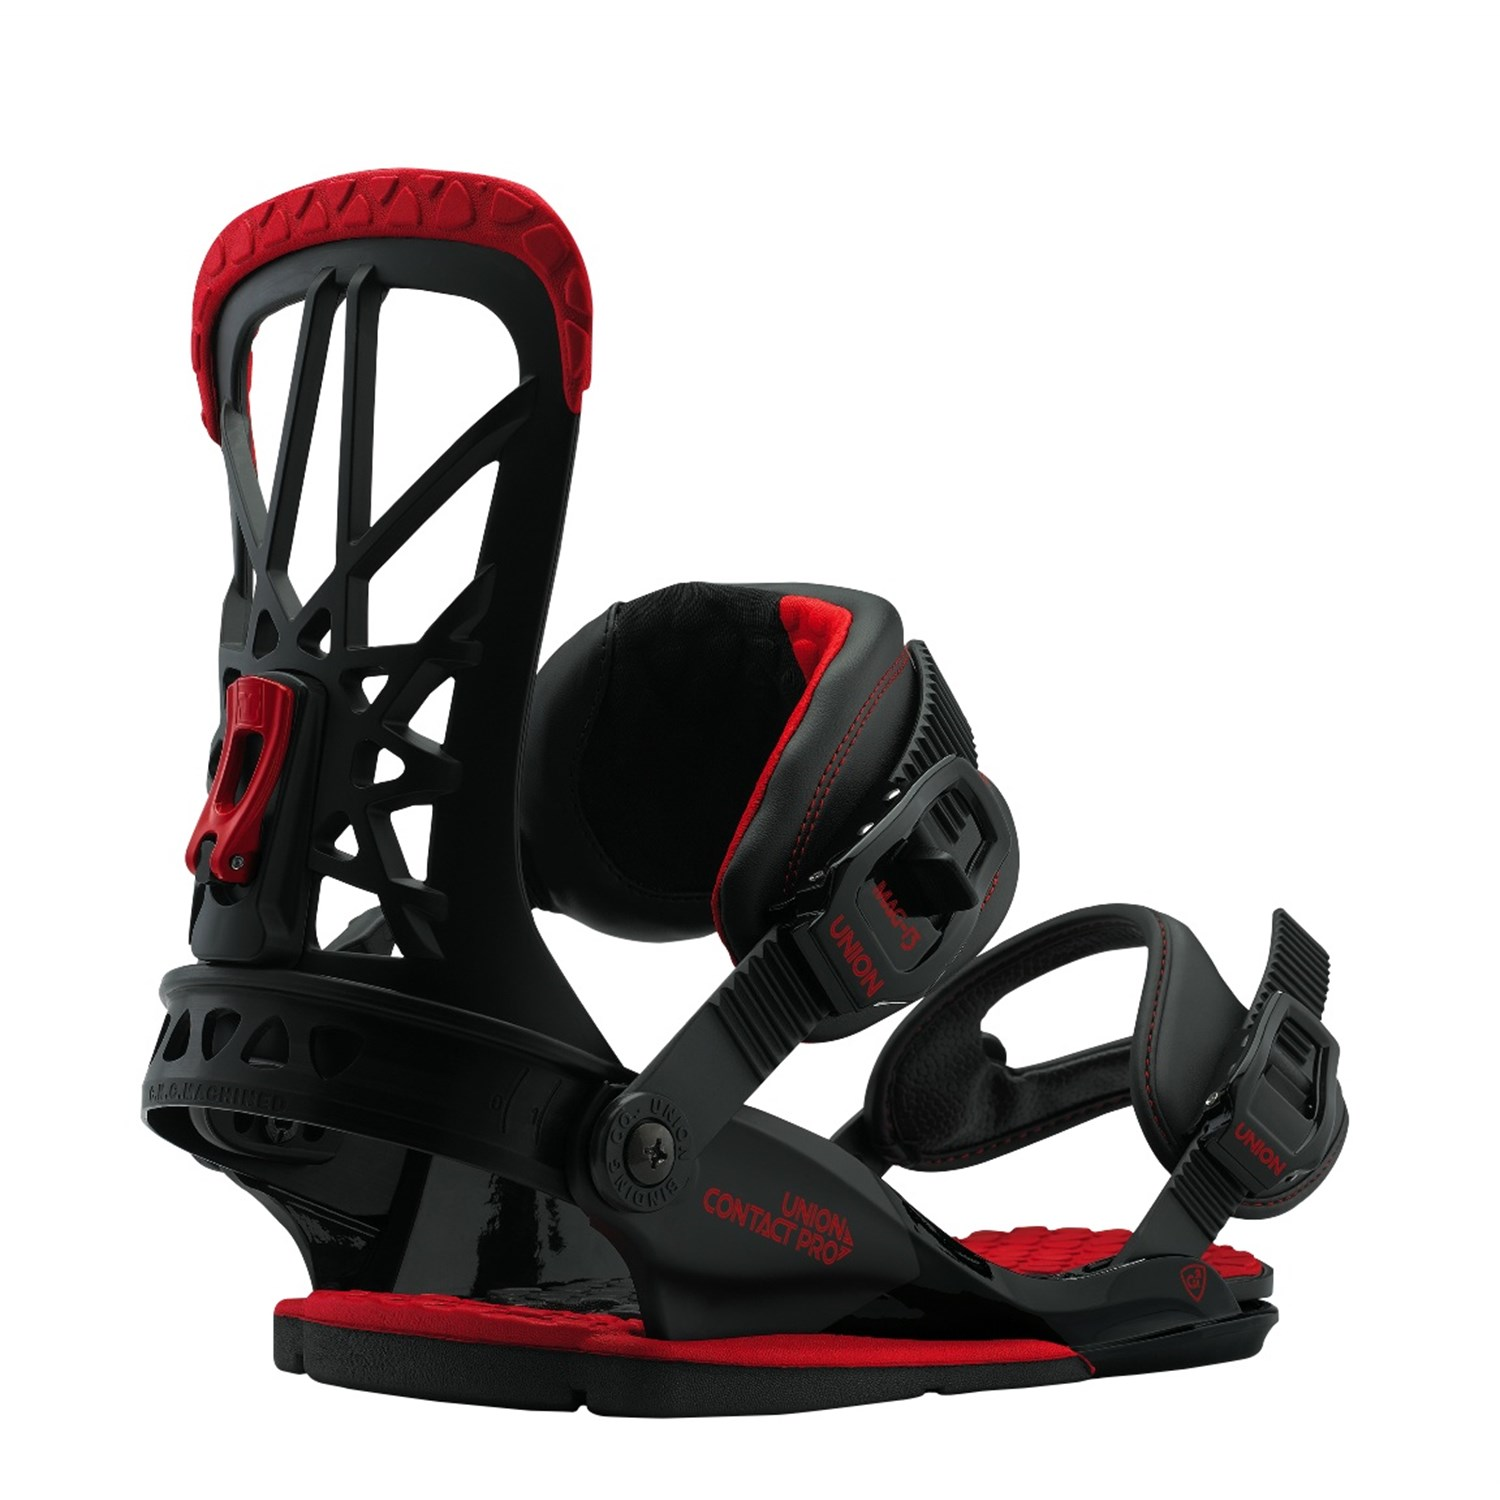 Union Contact Pro Snowboard Bindings 2012